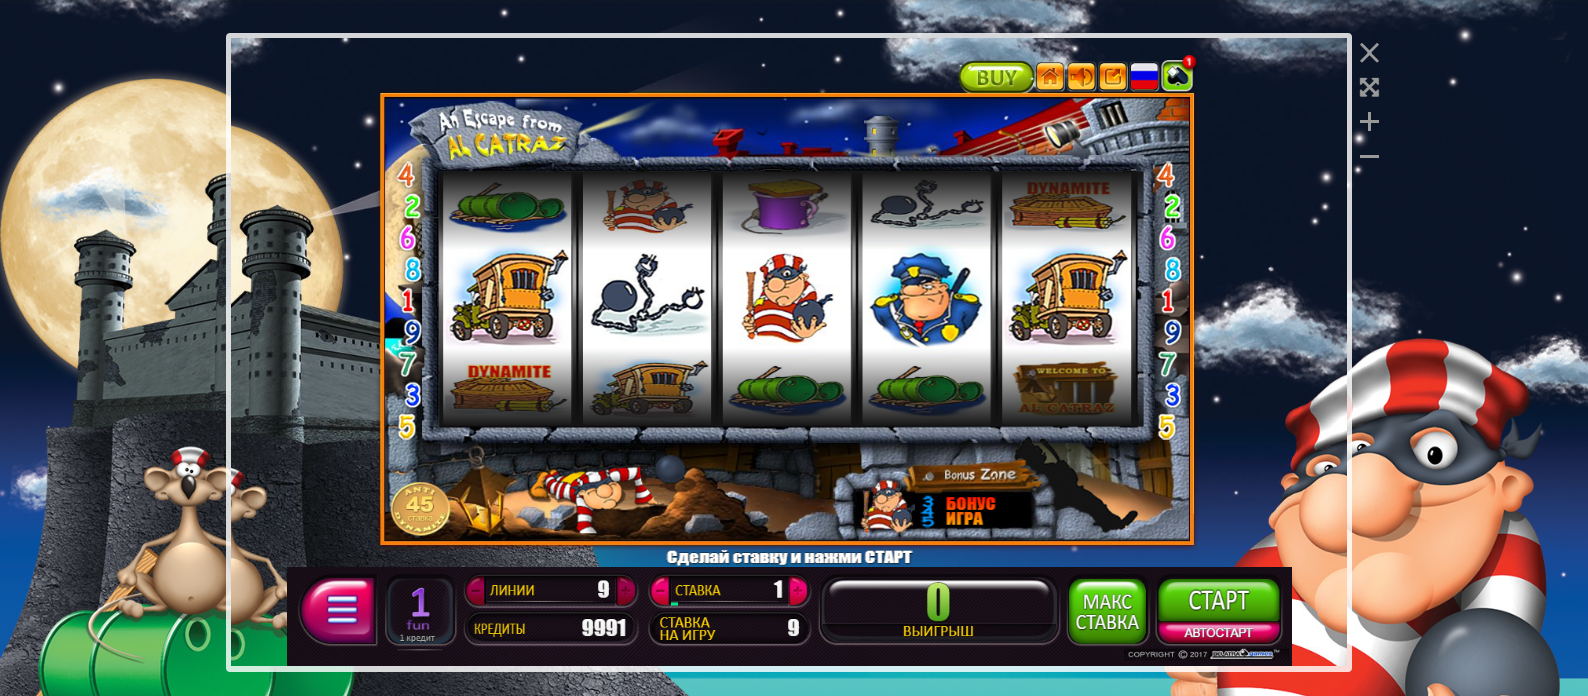 Скачать poker 888 для android full tilt